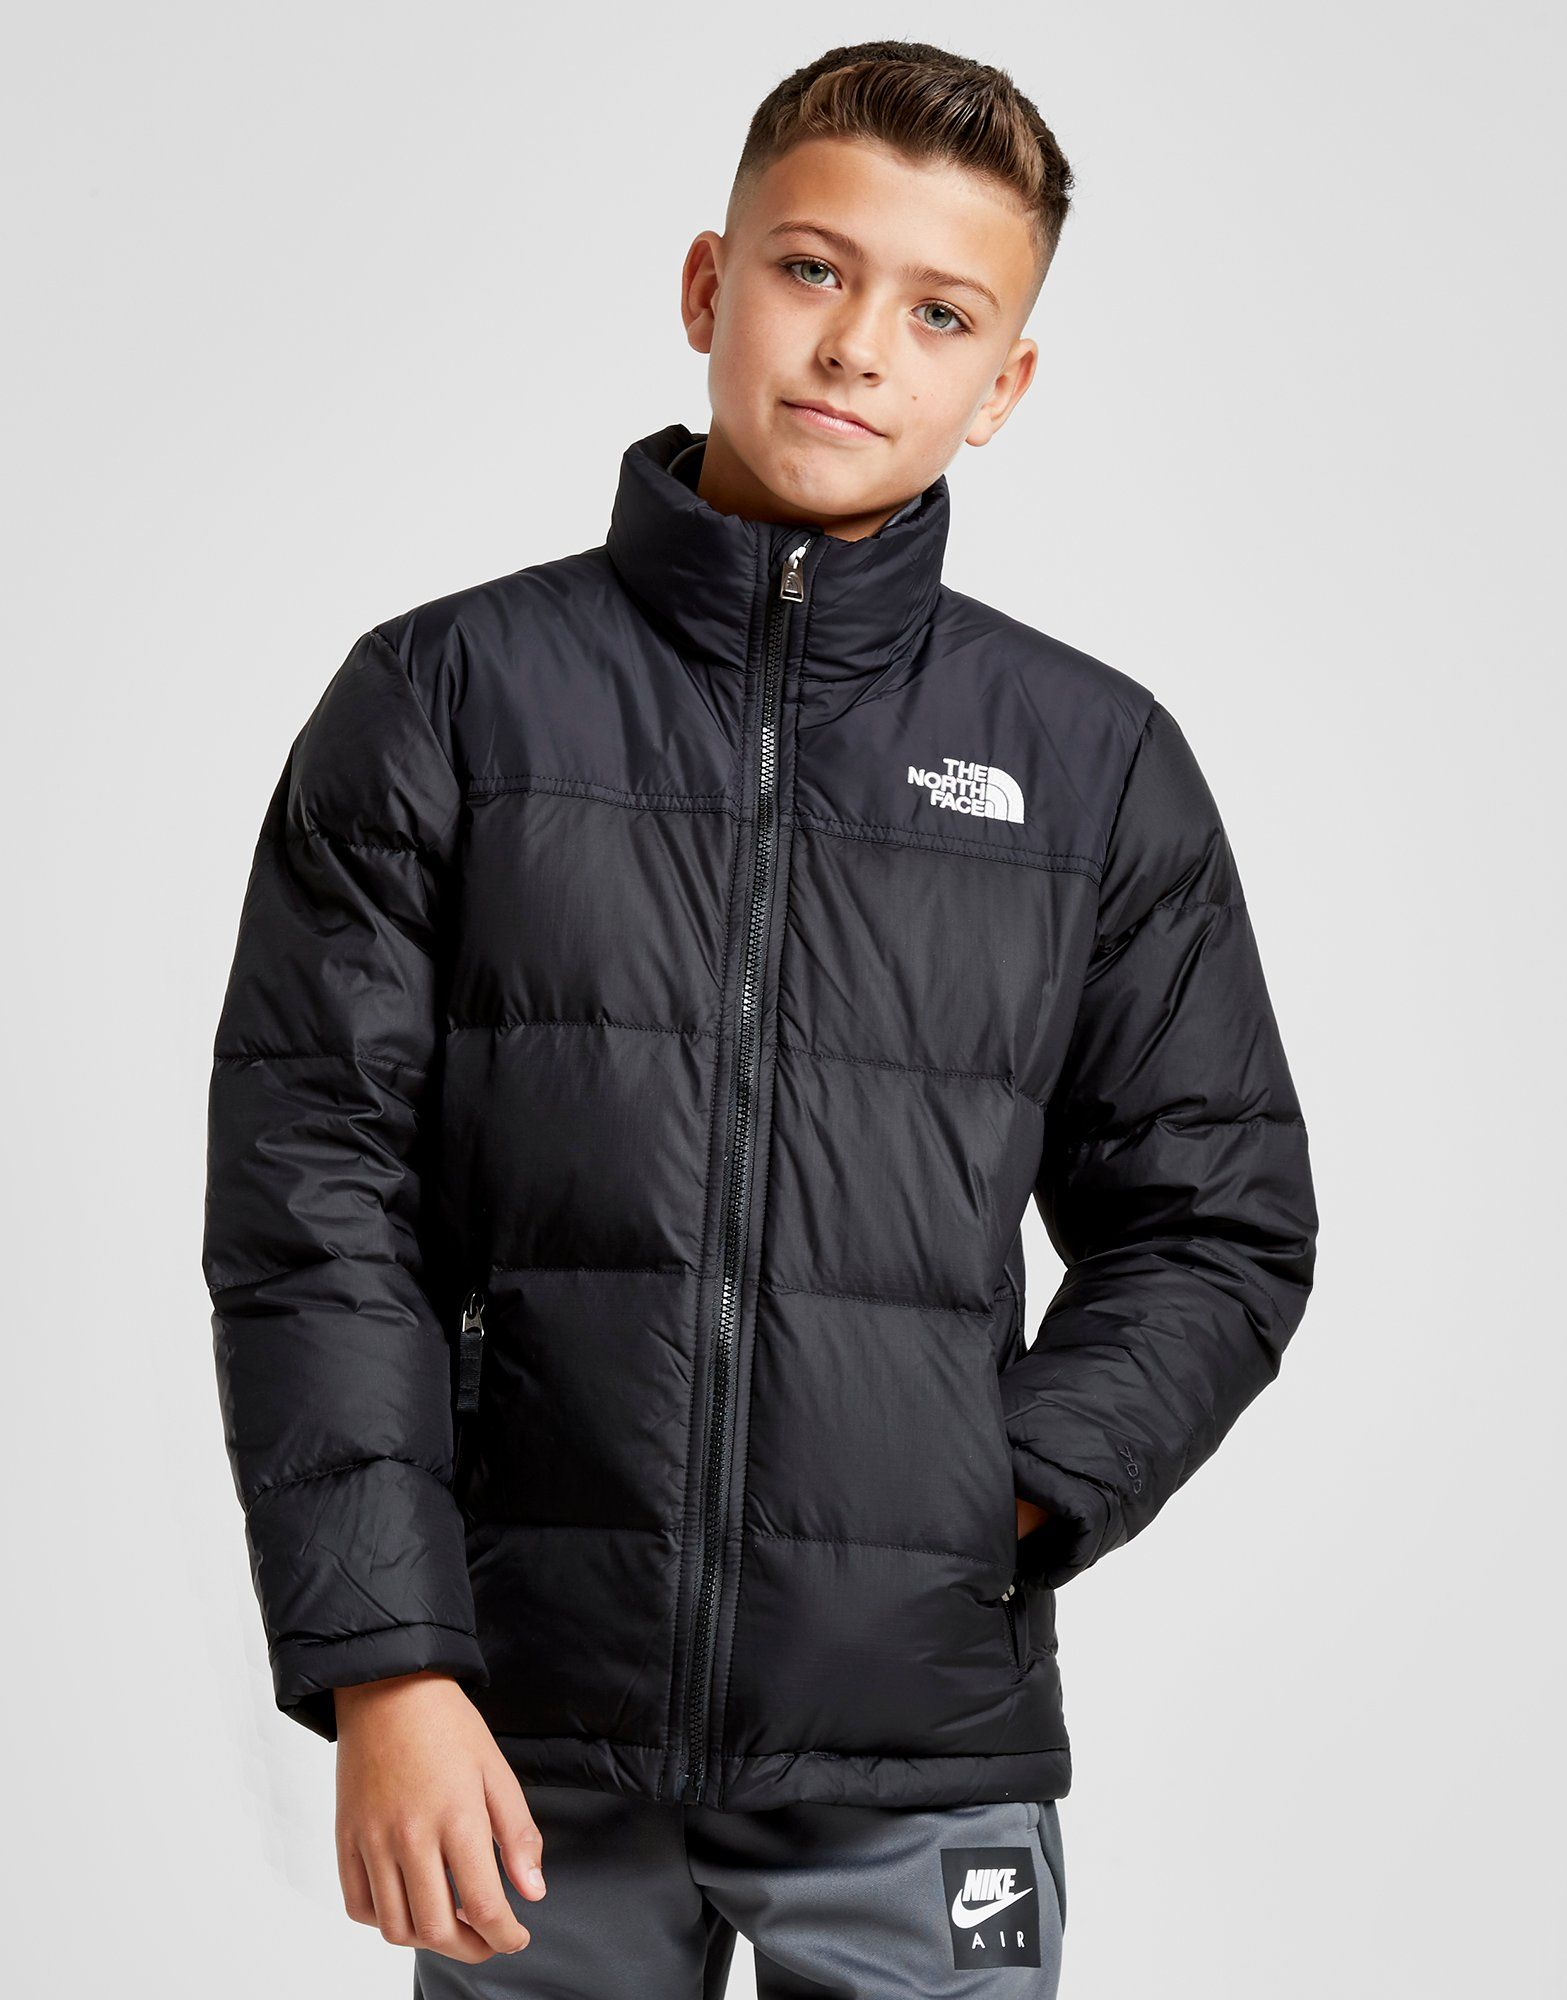 Folkekære The North Face Nuptse Jacket Junior | JD Sports Ireland CA-82